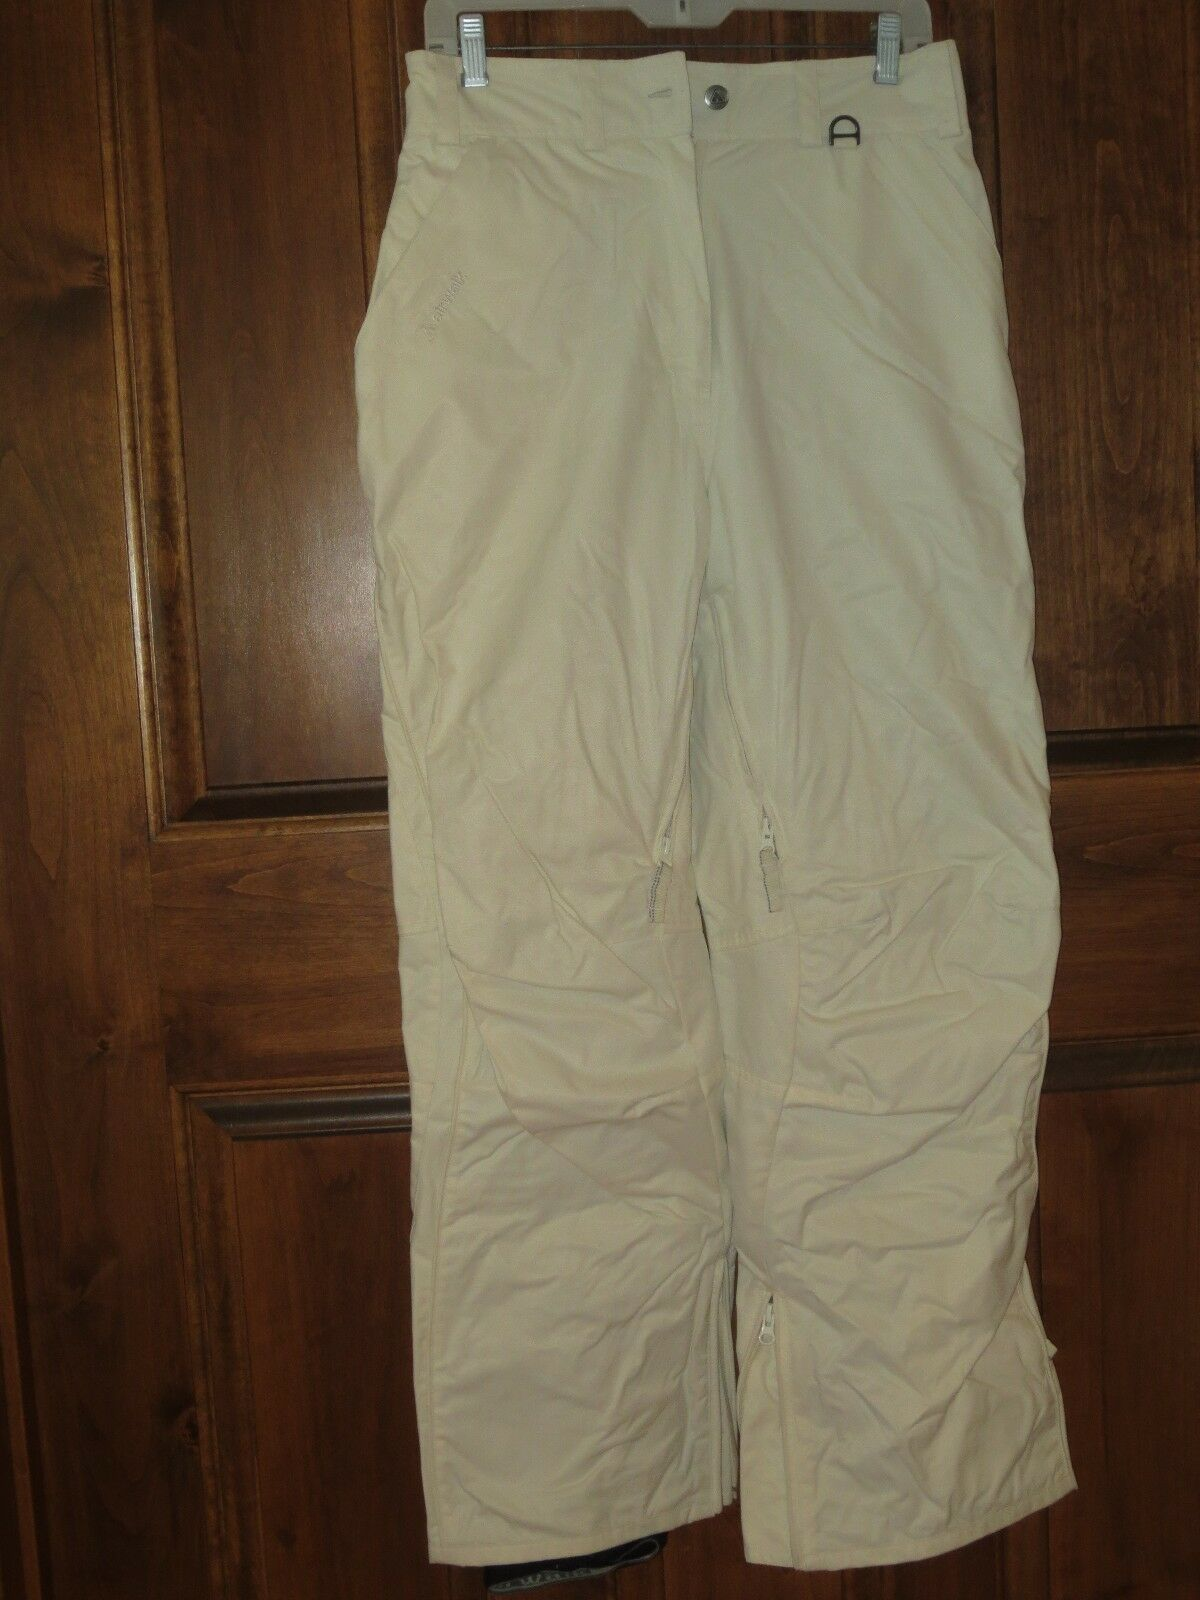 Airwalk Snowboard Ski Pants Wouomo Small Off bianca or Cream Coloreee FANTASTIC